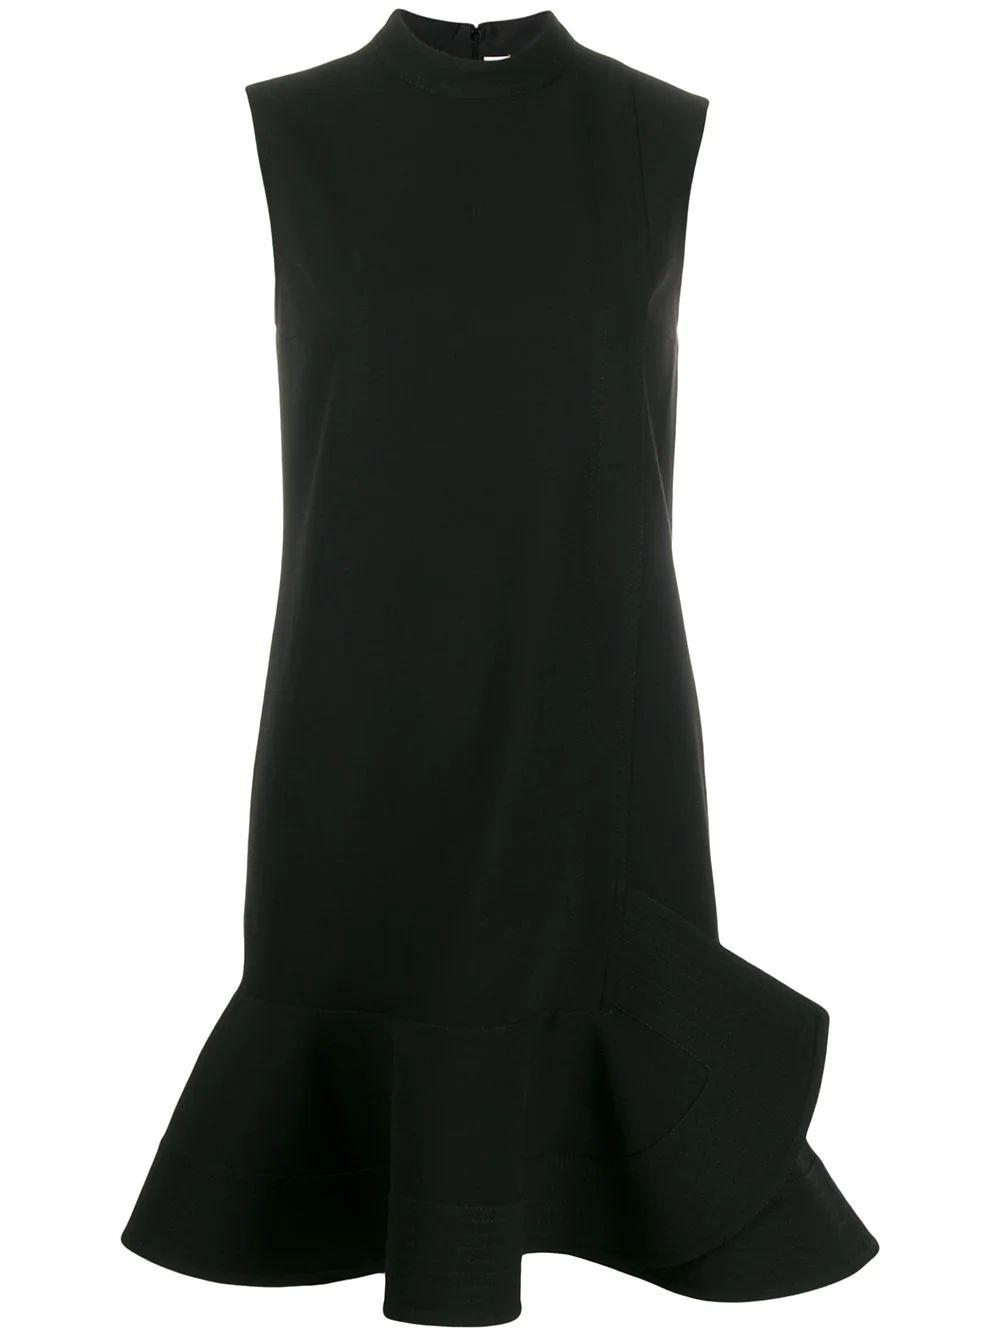 Sleeve Less Peplum Hem Dress